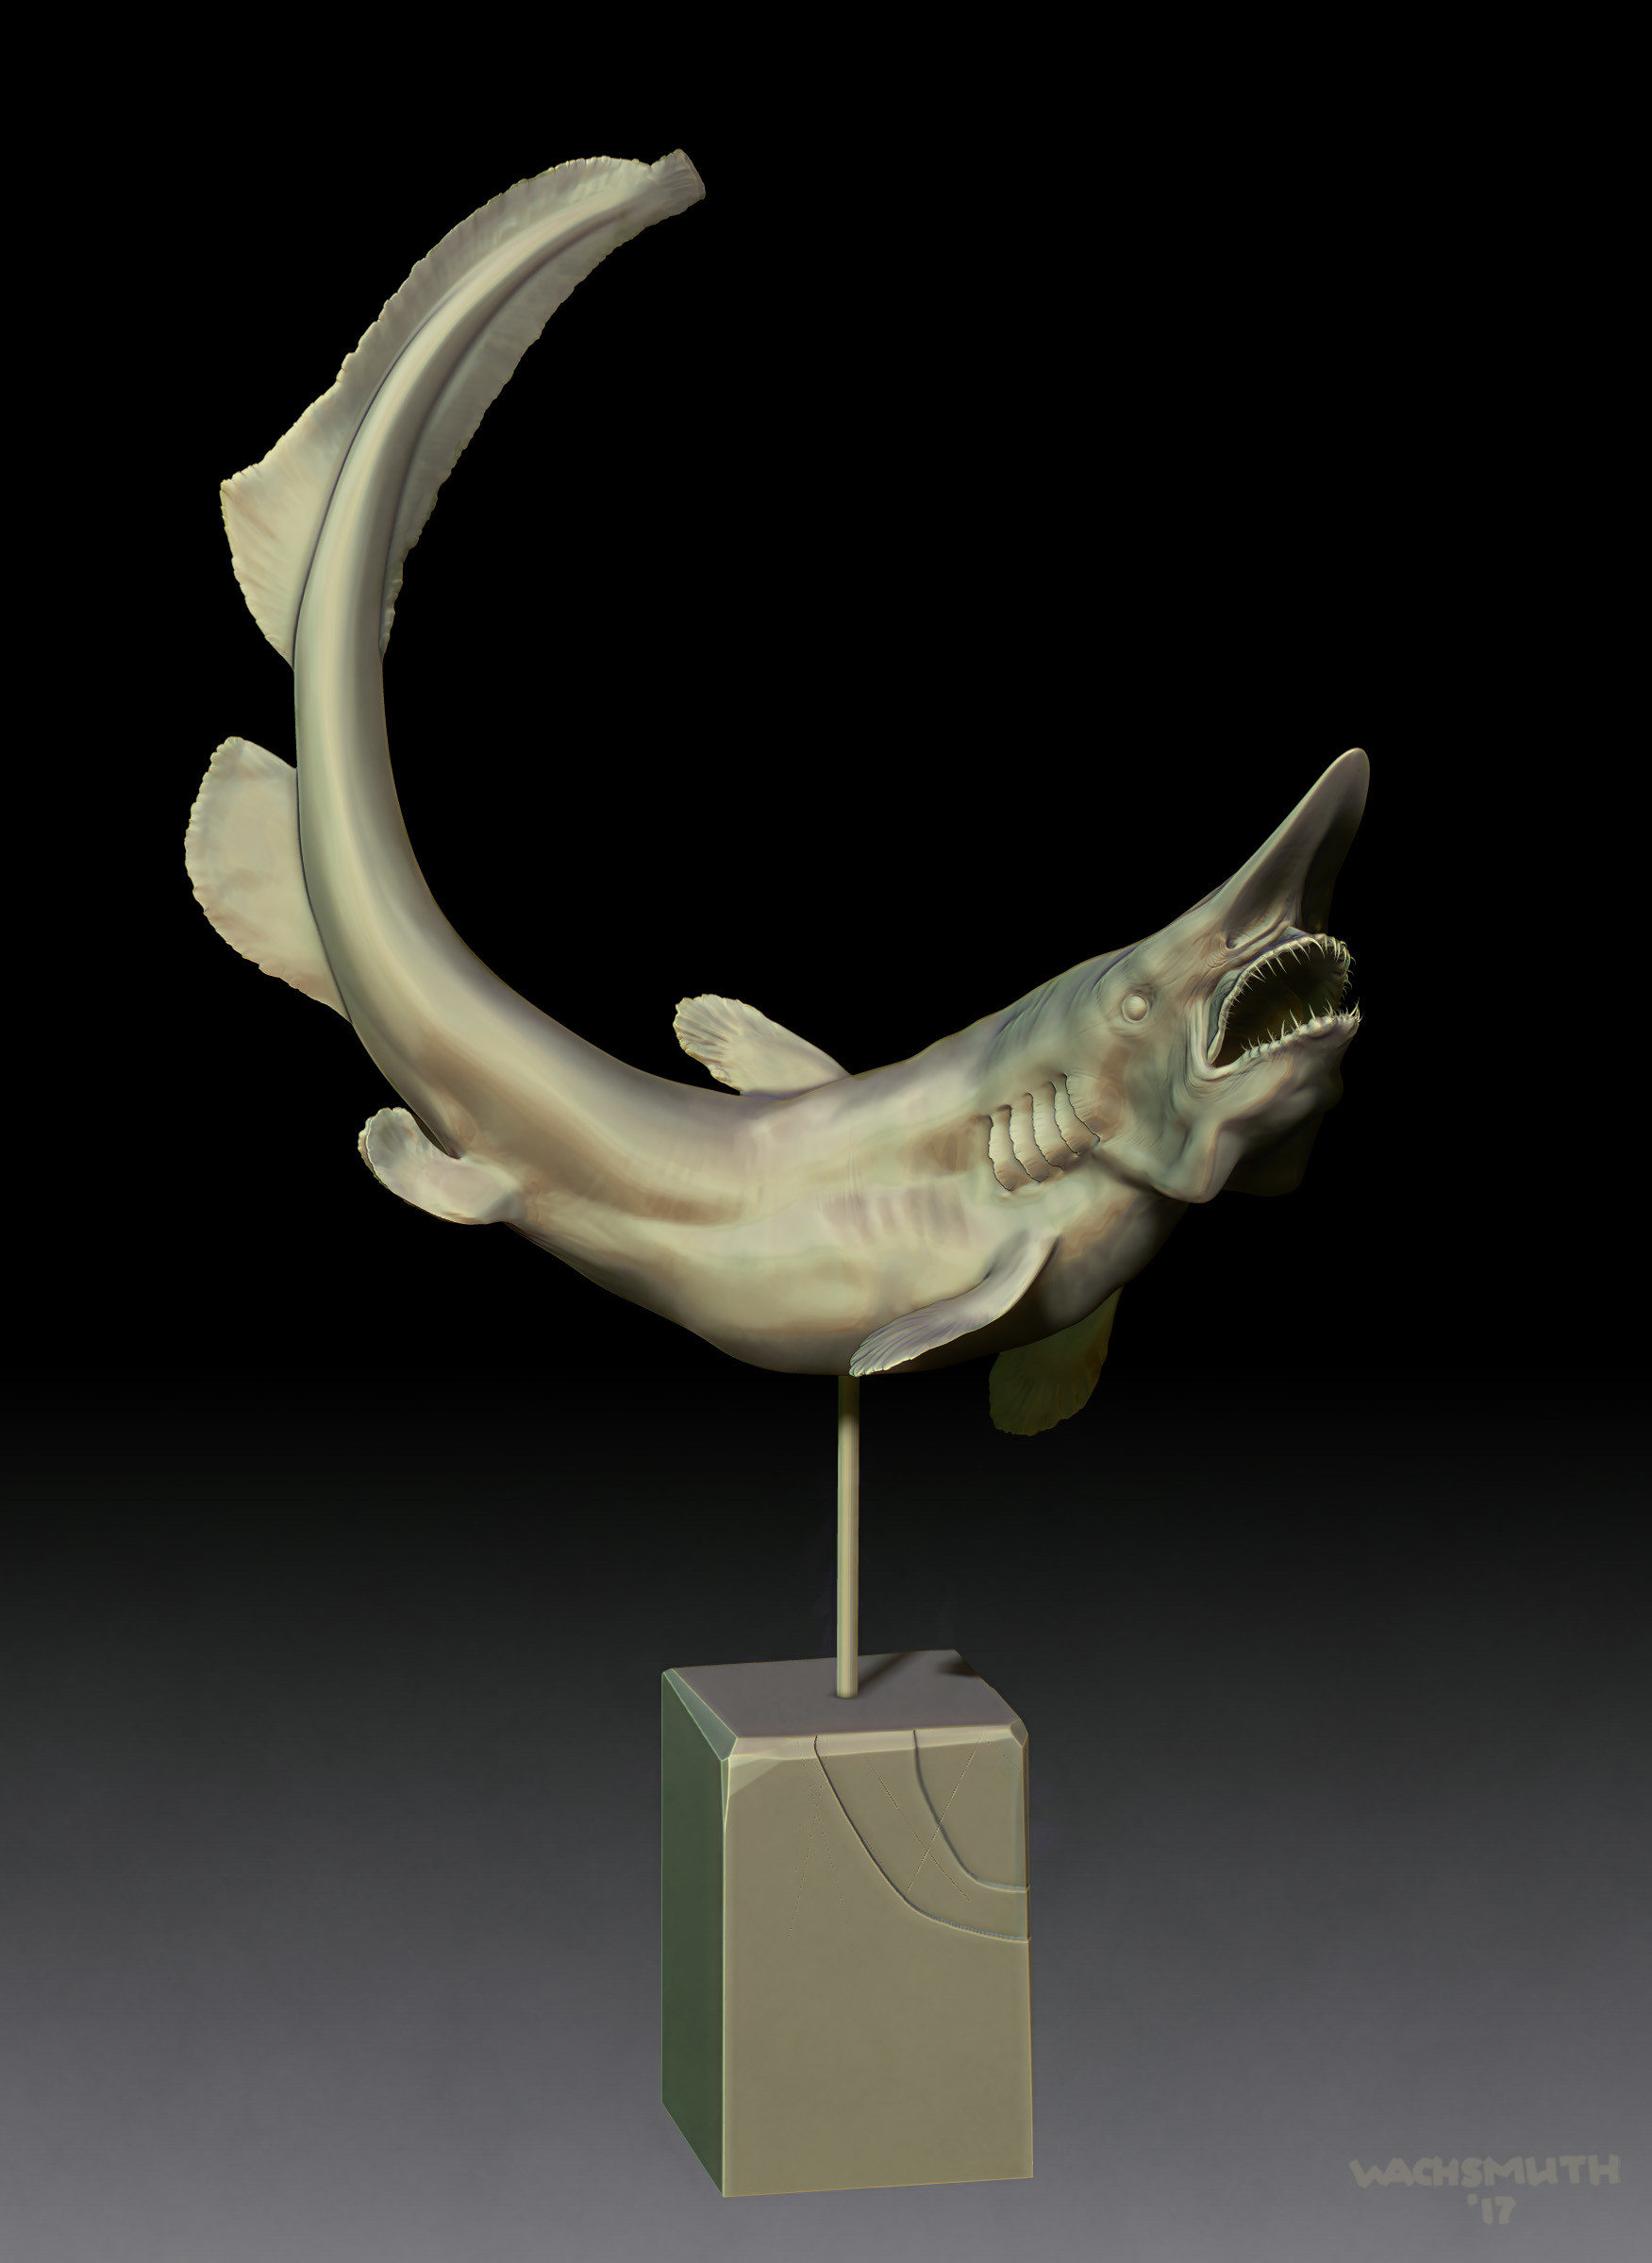 Dirk wachsmuth goblin shark sculpture 01 4web